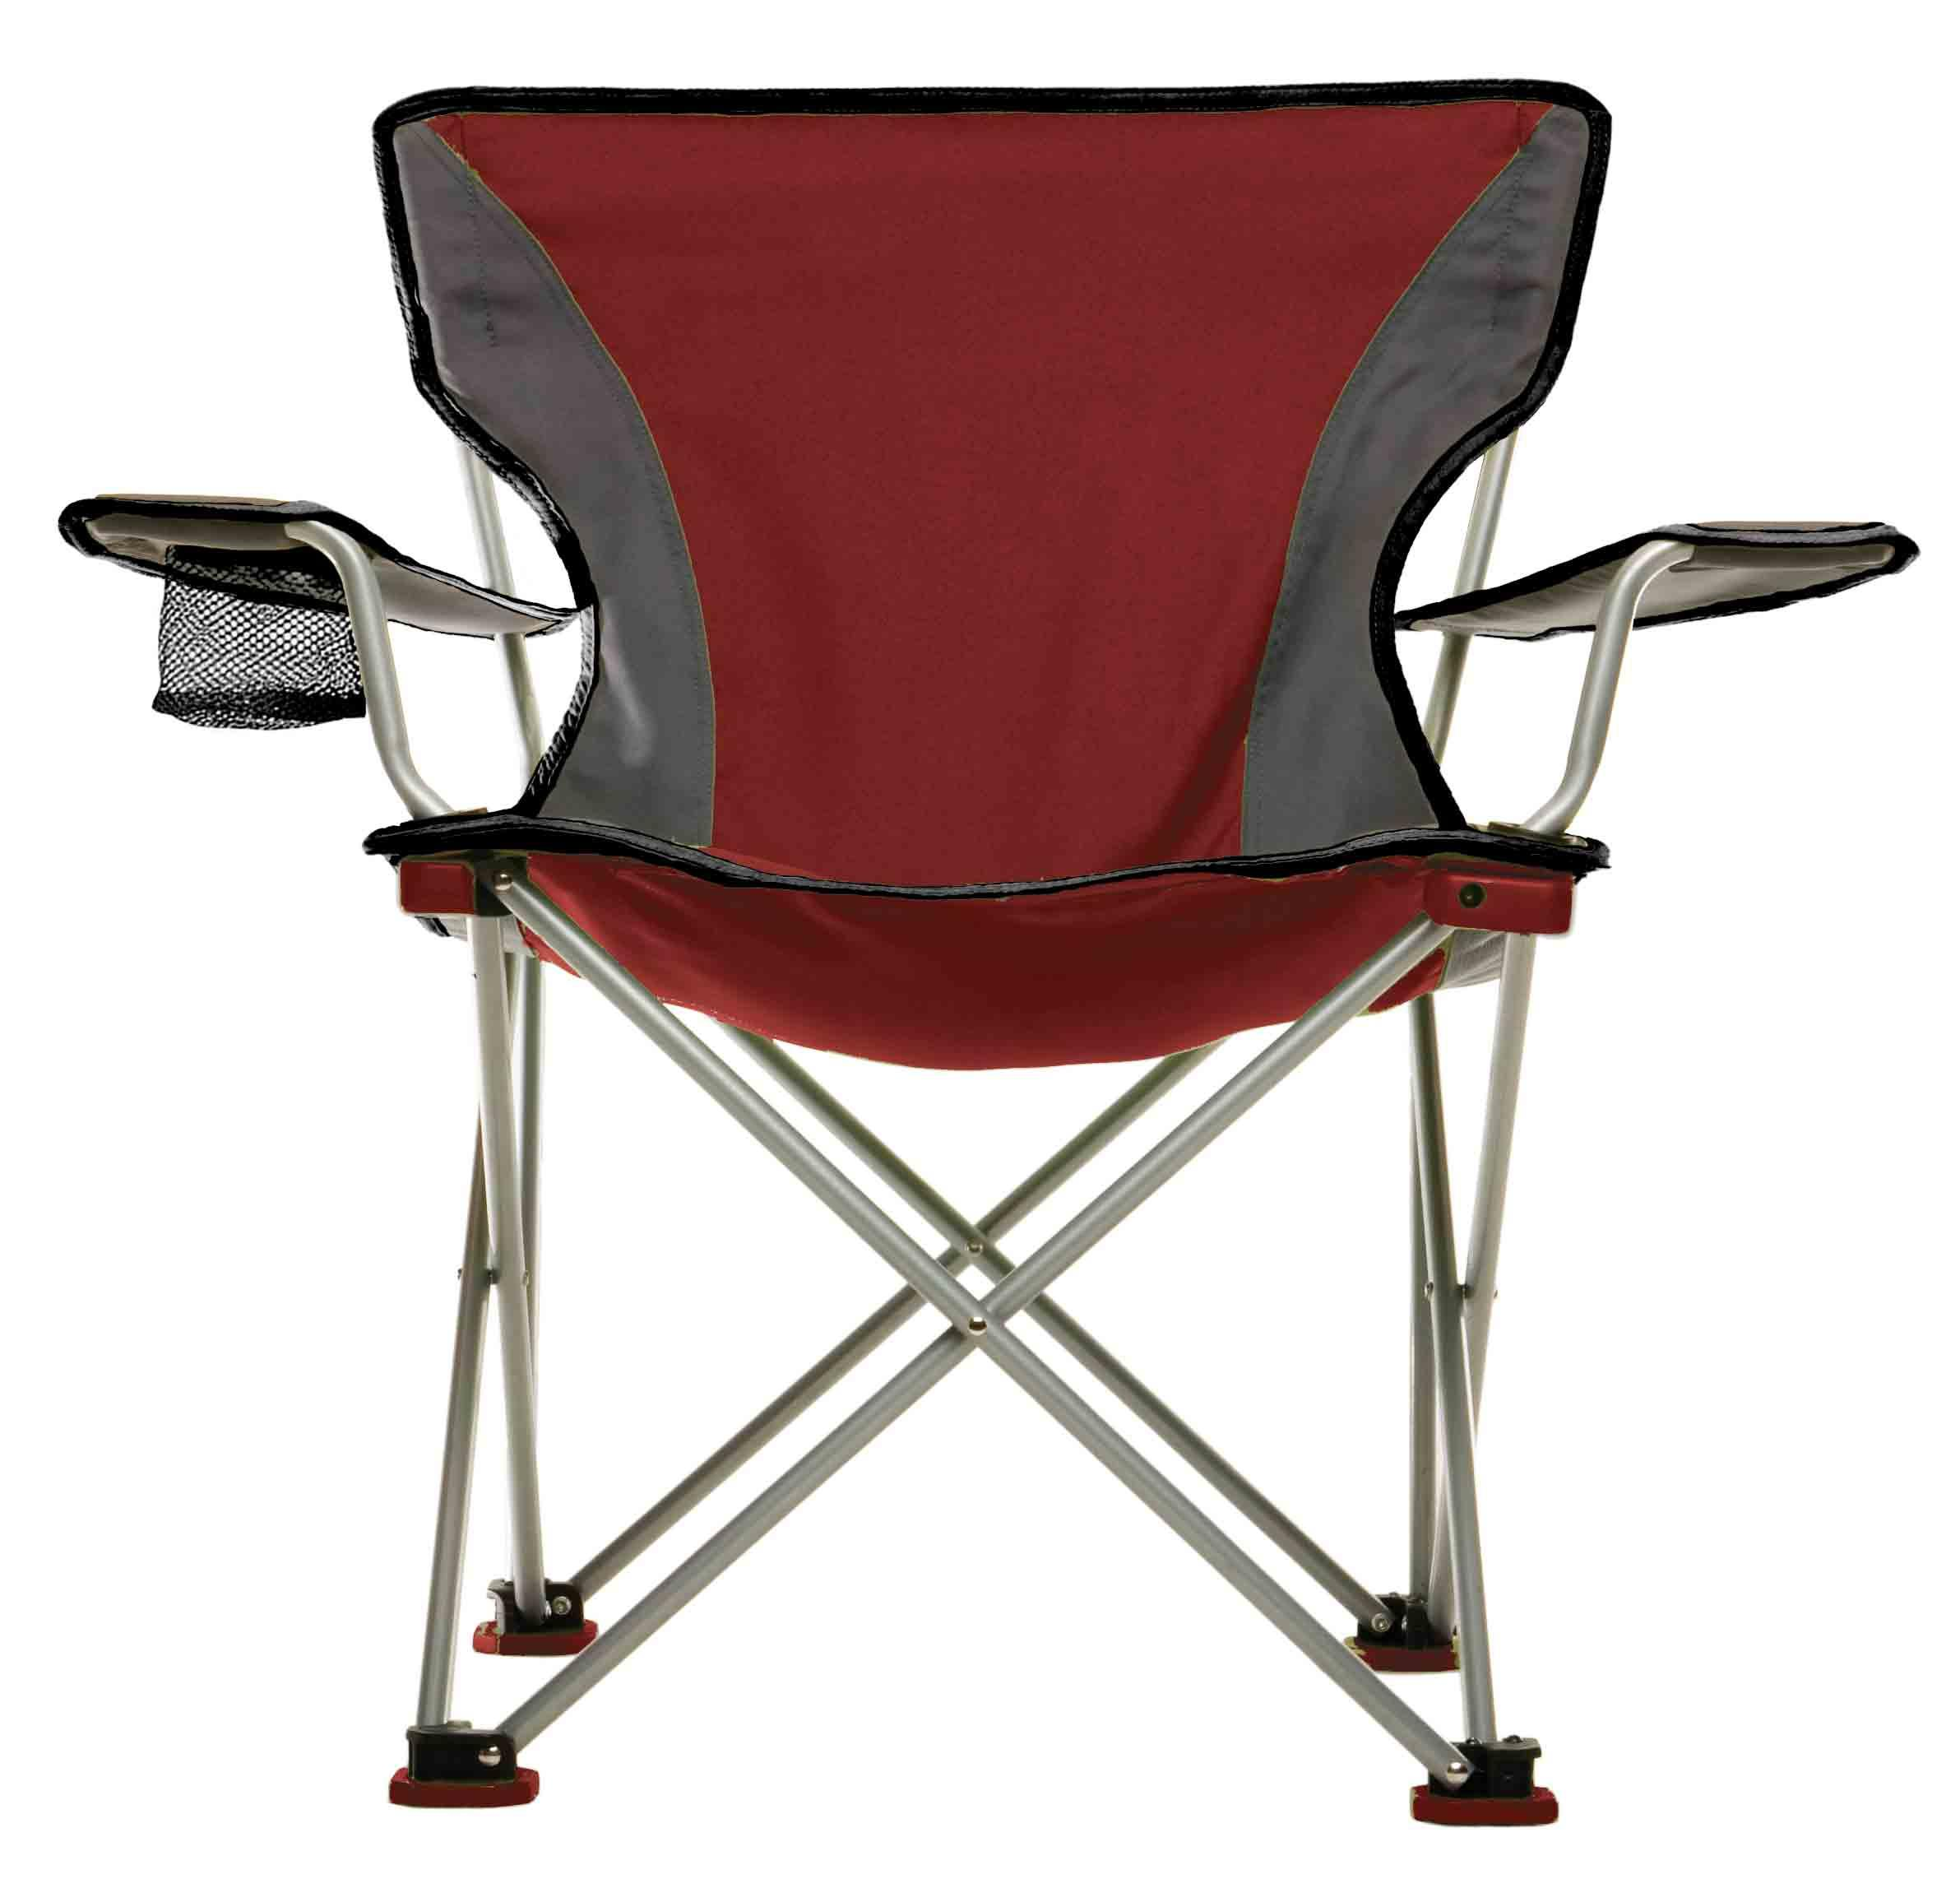 travel chair big bubba desk fluffy new red cool gray easy rider